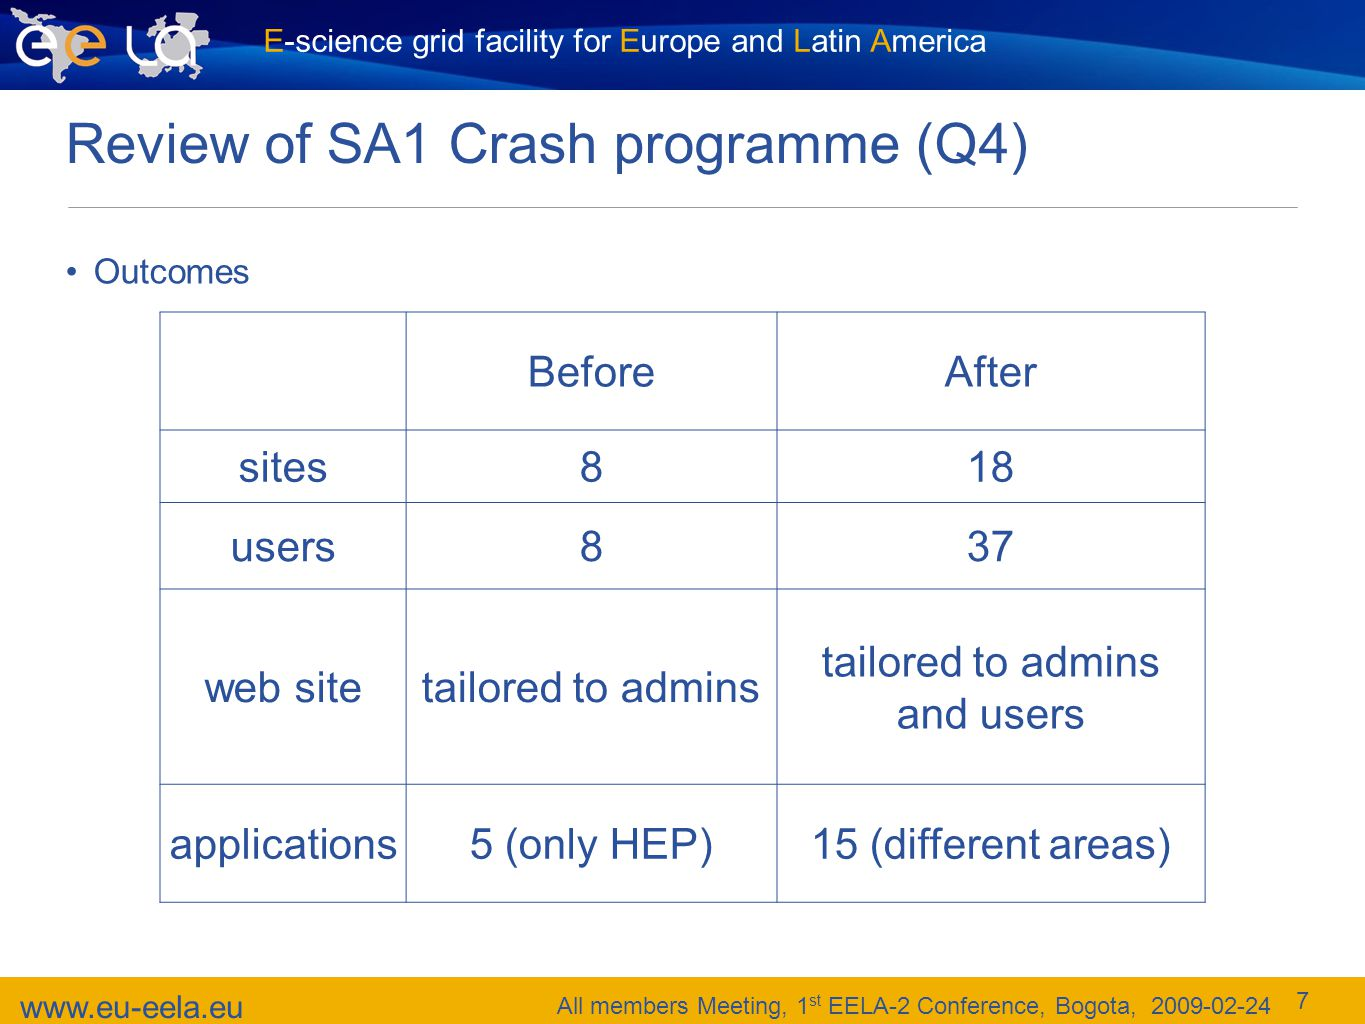 www.eu-eela.eu All members Meeting, 1 st EELA-2 Conference, Bogota, 2009-02-24 E-science grid facility for Europe and Latin America 7 Review of SA1 Crash programme (Q4) Outcomes BeforeAfter sites818 users837 web sitetailored to admins tailored to admins and users applications5 (only HEP)15 (different areas)